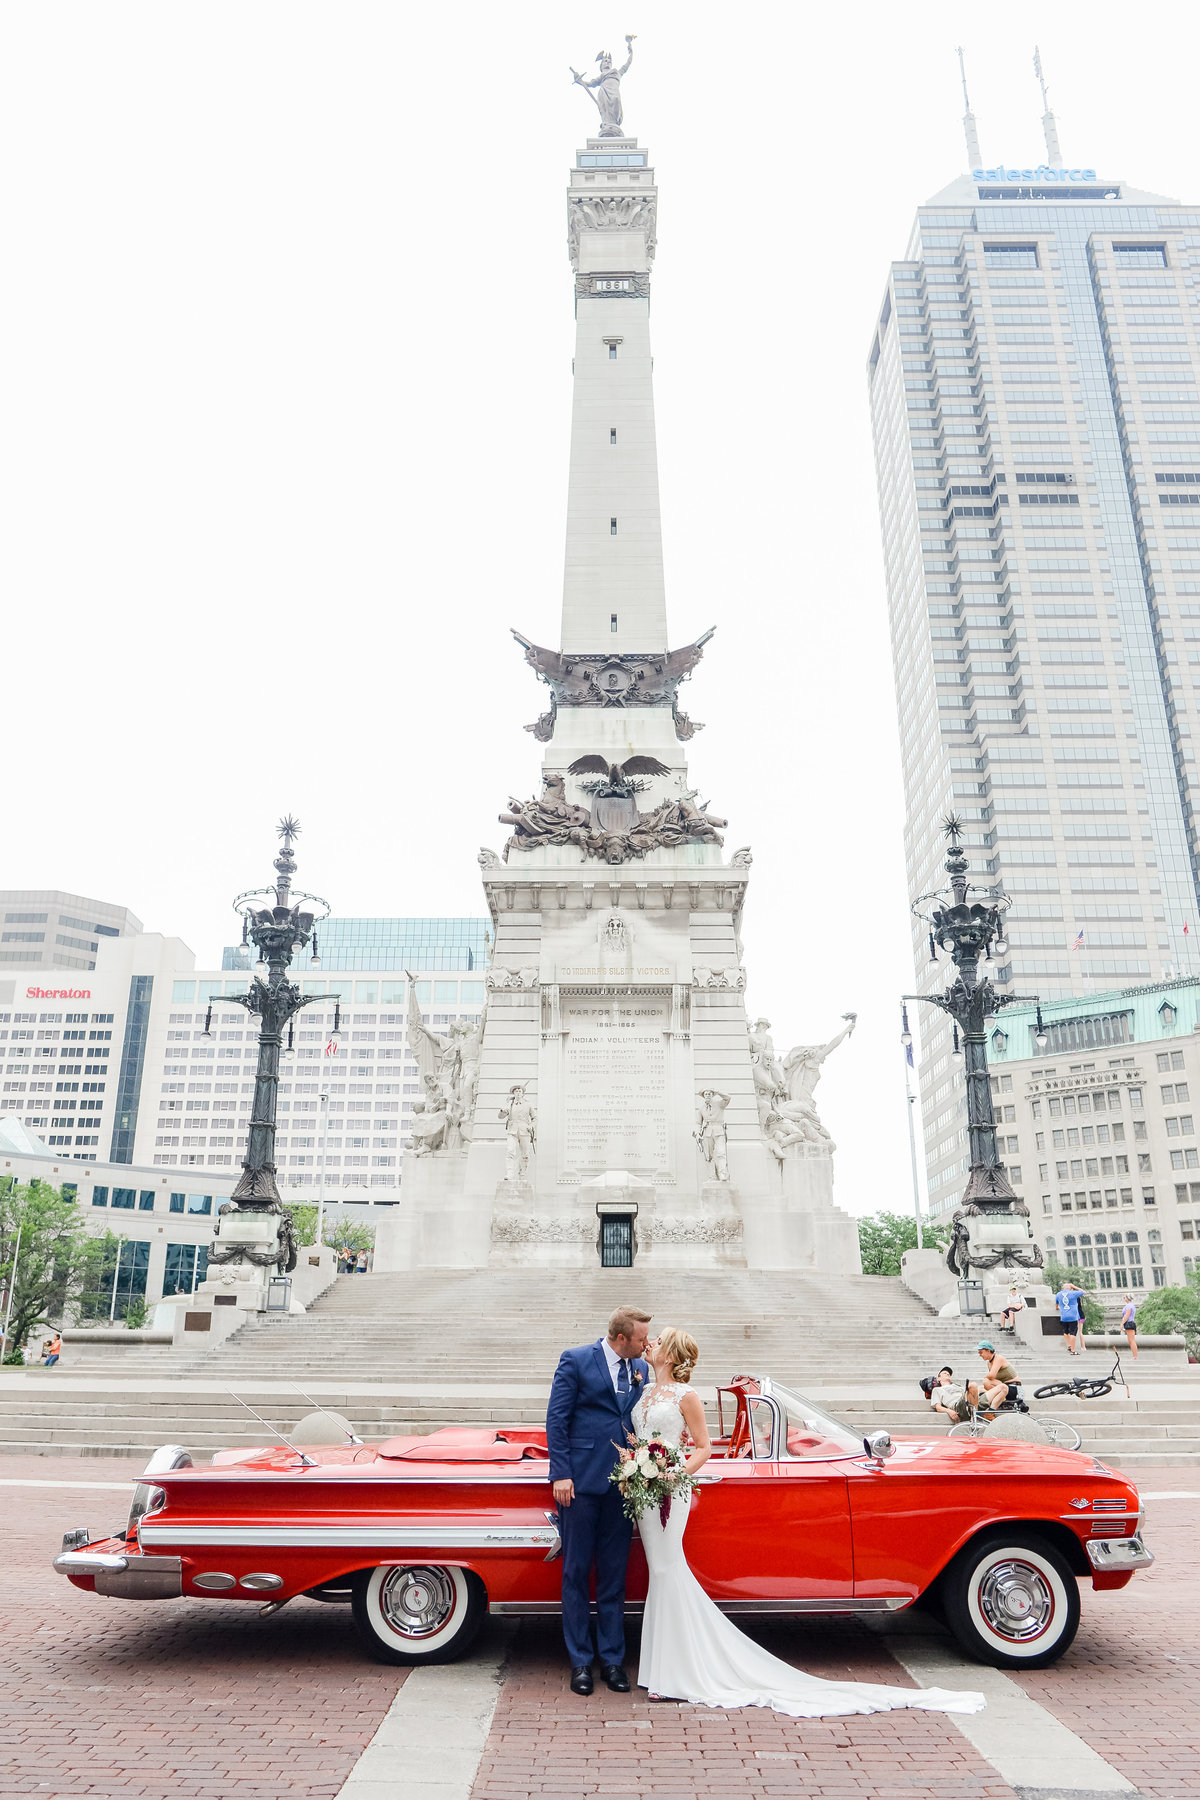 Indianapolis Wedding Photographer | Sara Ackermann Photography